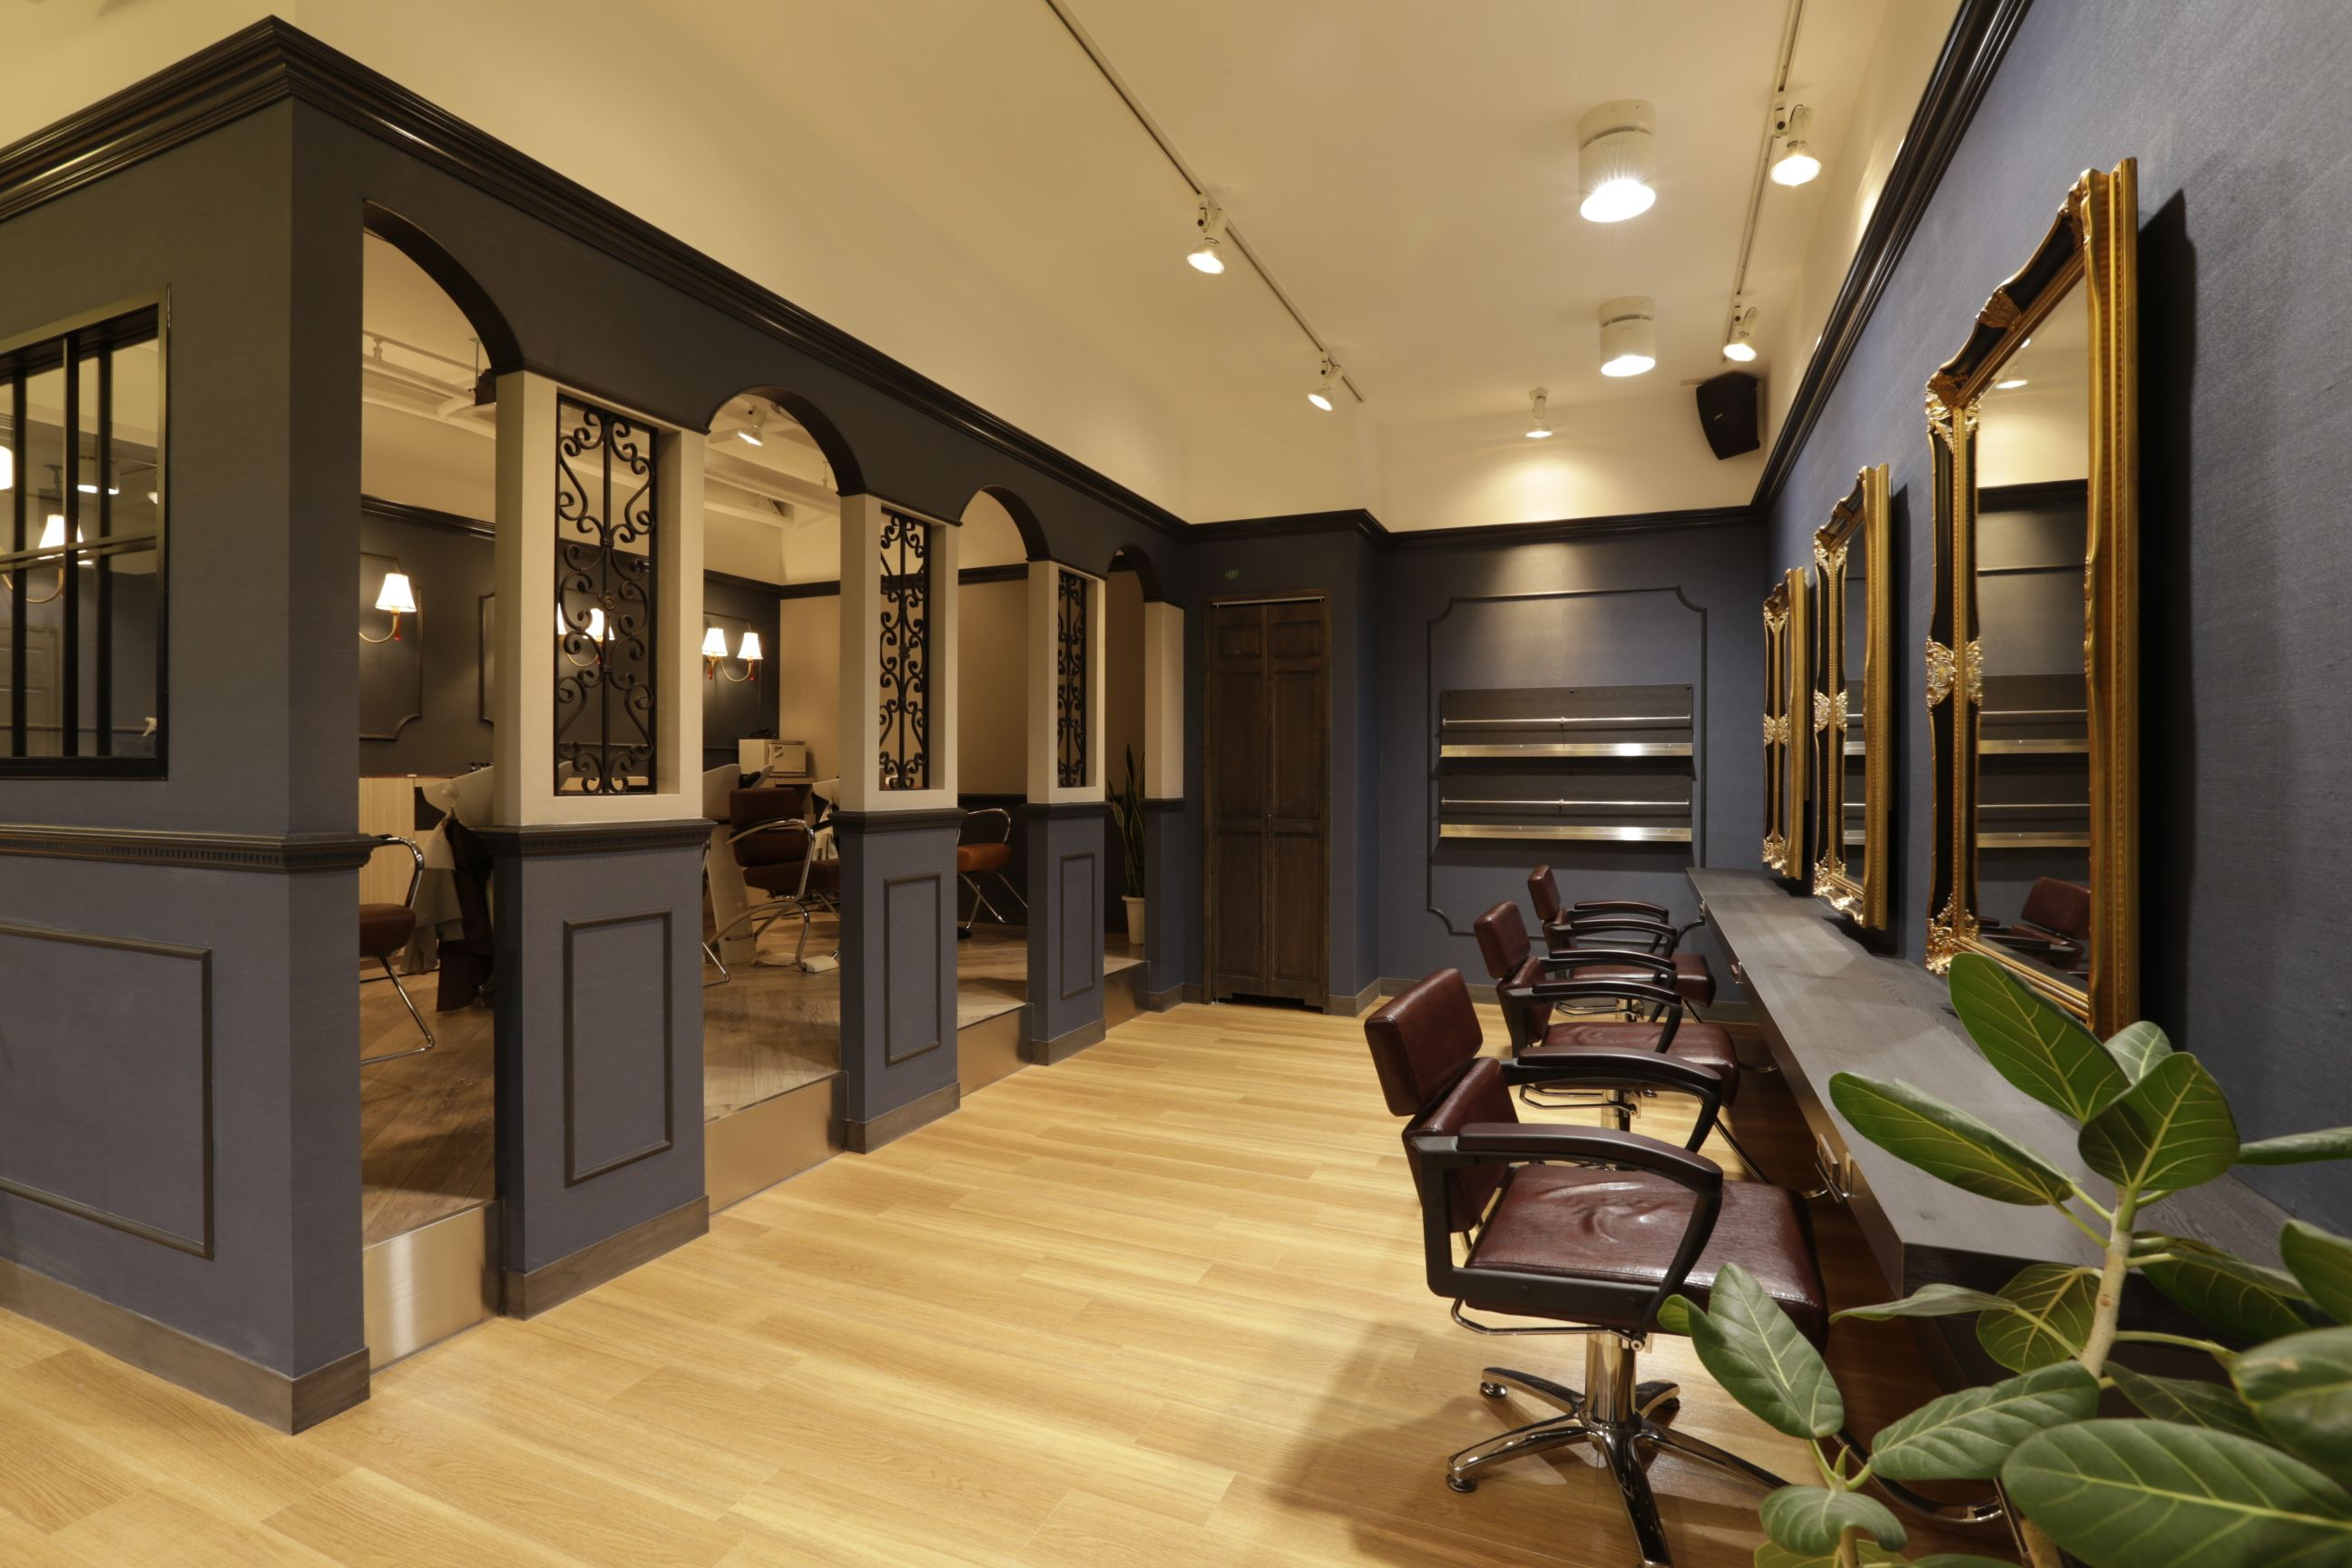 Beauty salon interior design ideas chairs mirrors for Beauty salon designs for interior